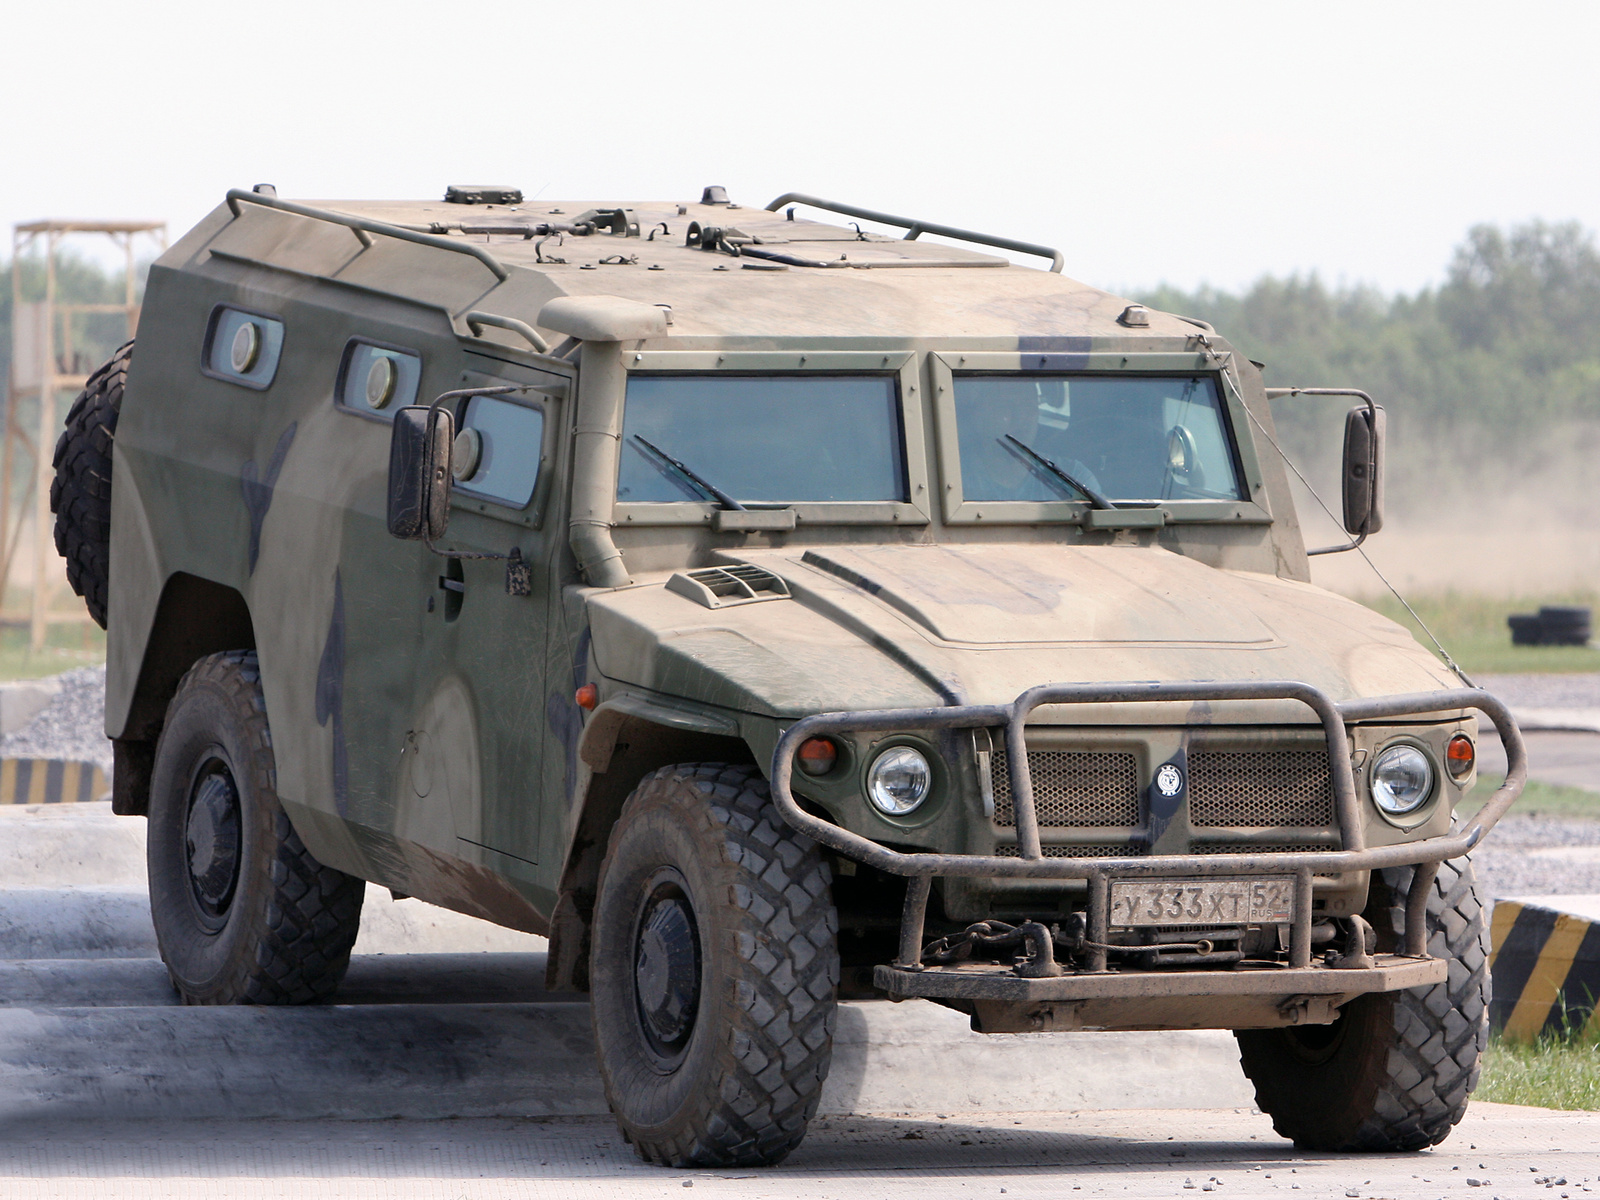 Ranch Jeep >> 8 Military Bug Out Vehicles You Can Own » TinHatRanch